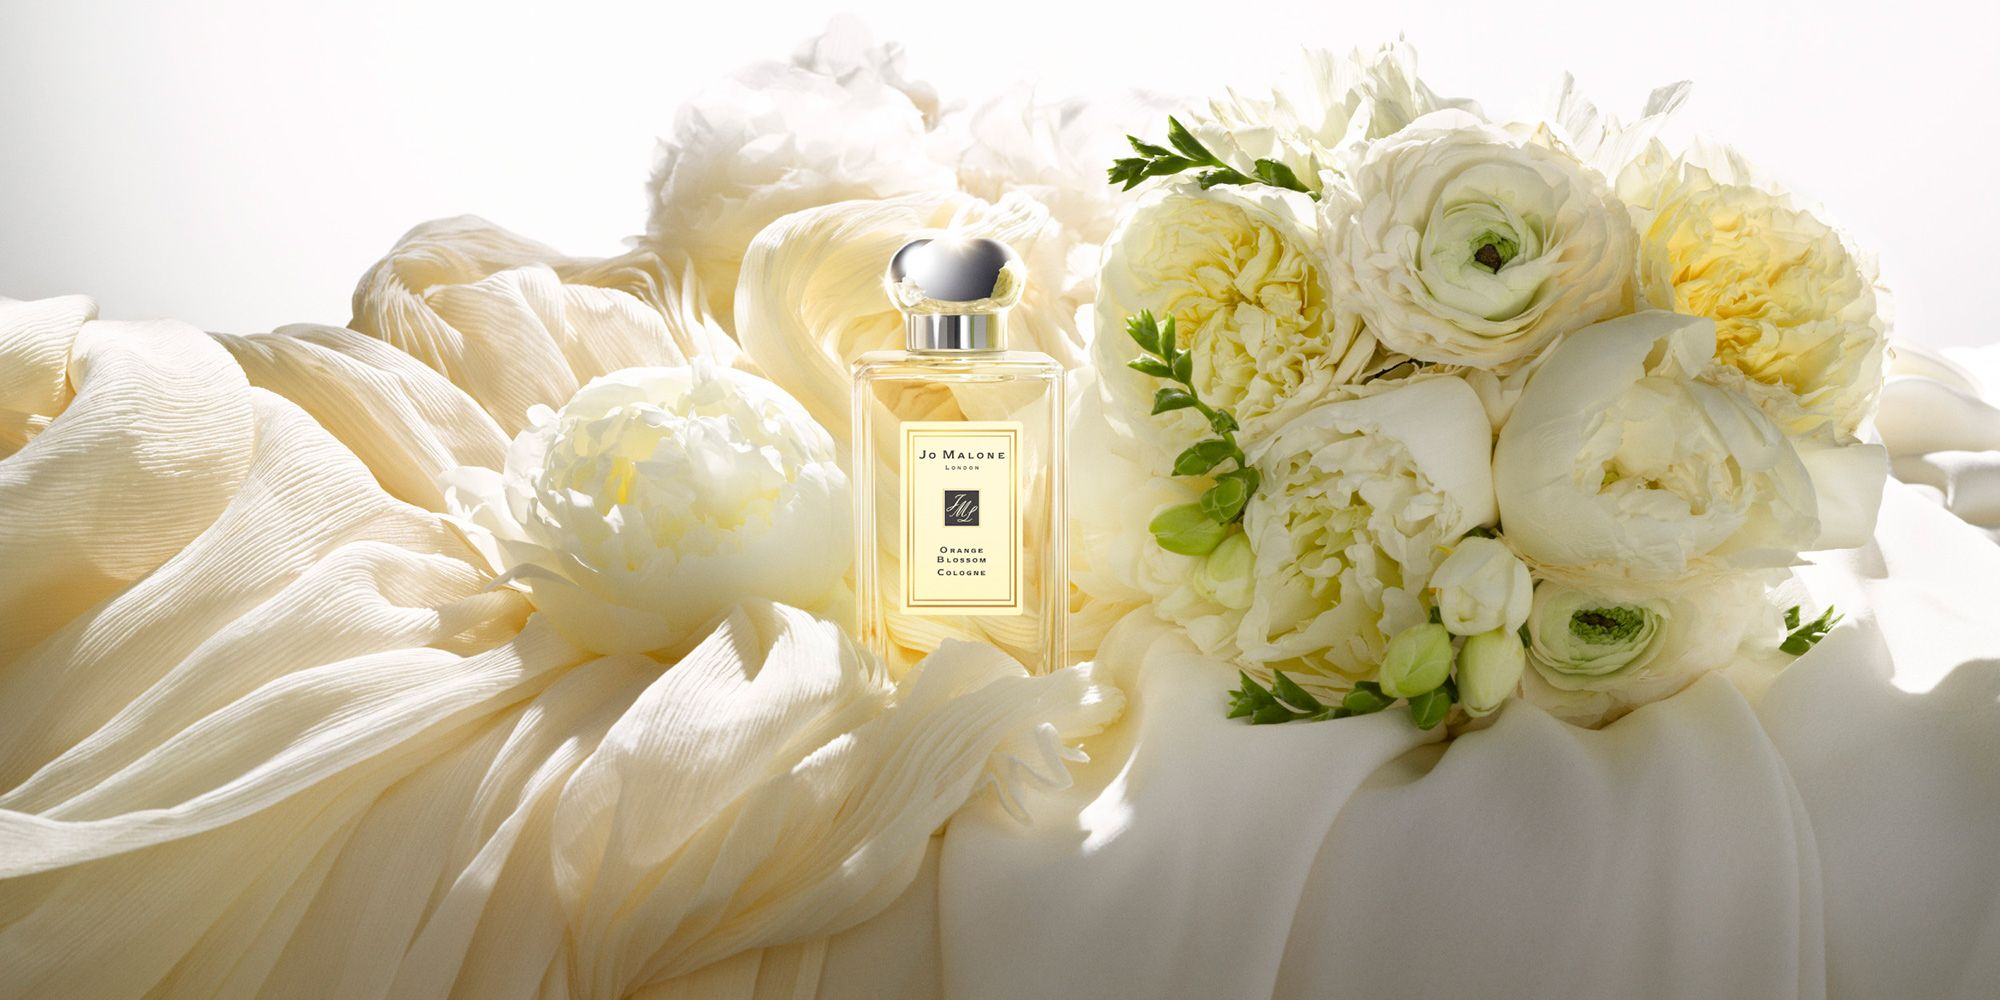 Bridal fragrance services